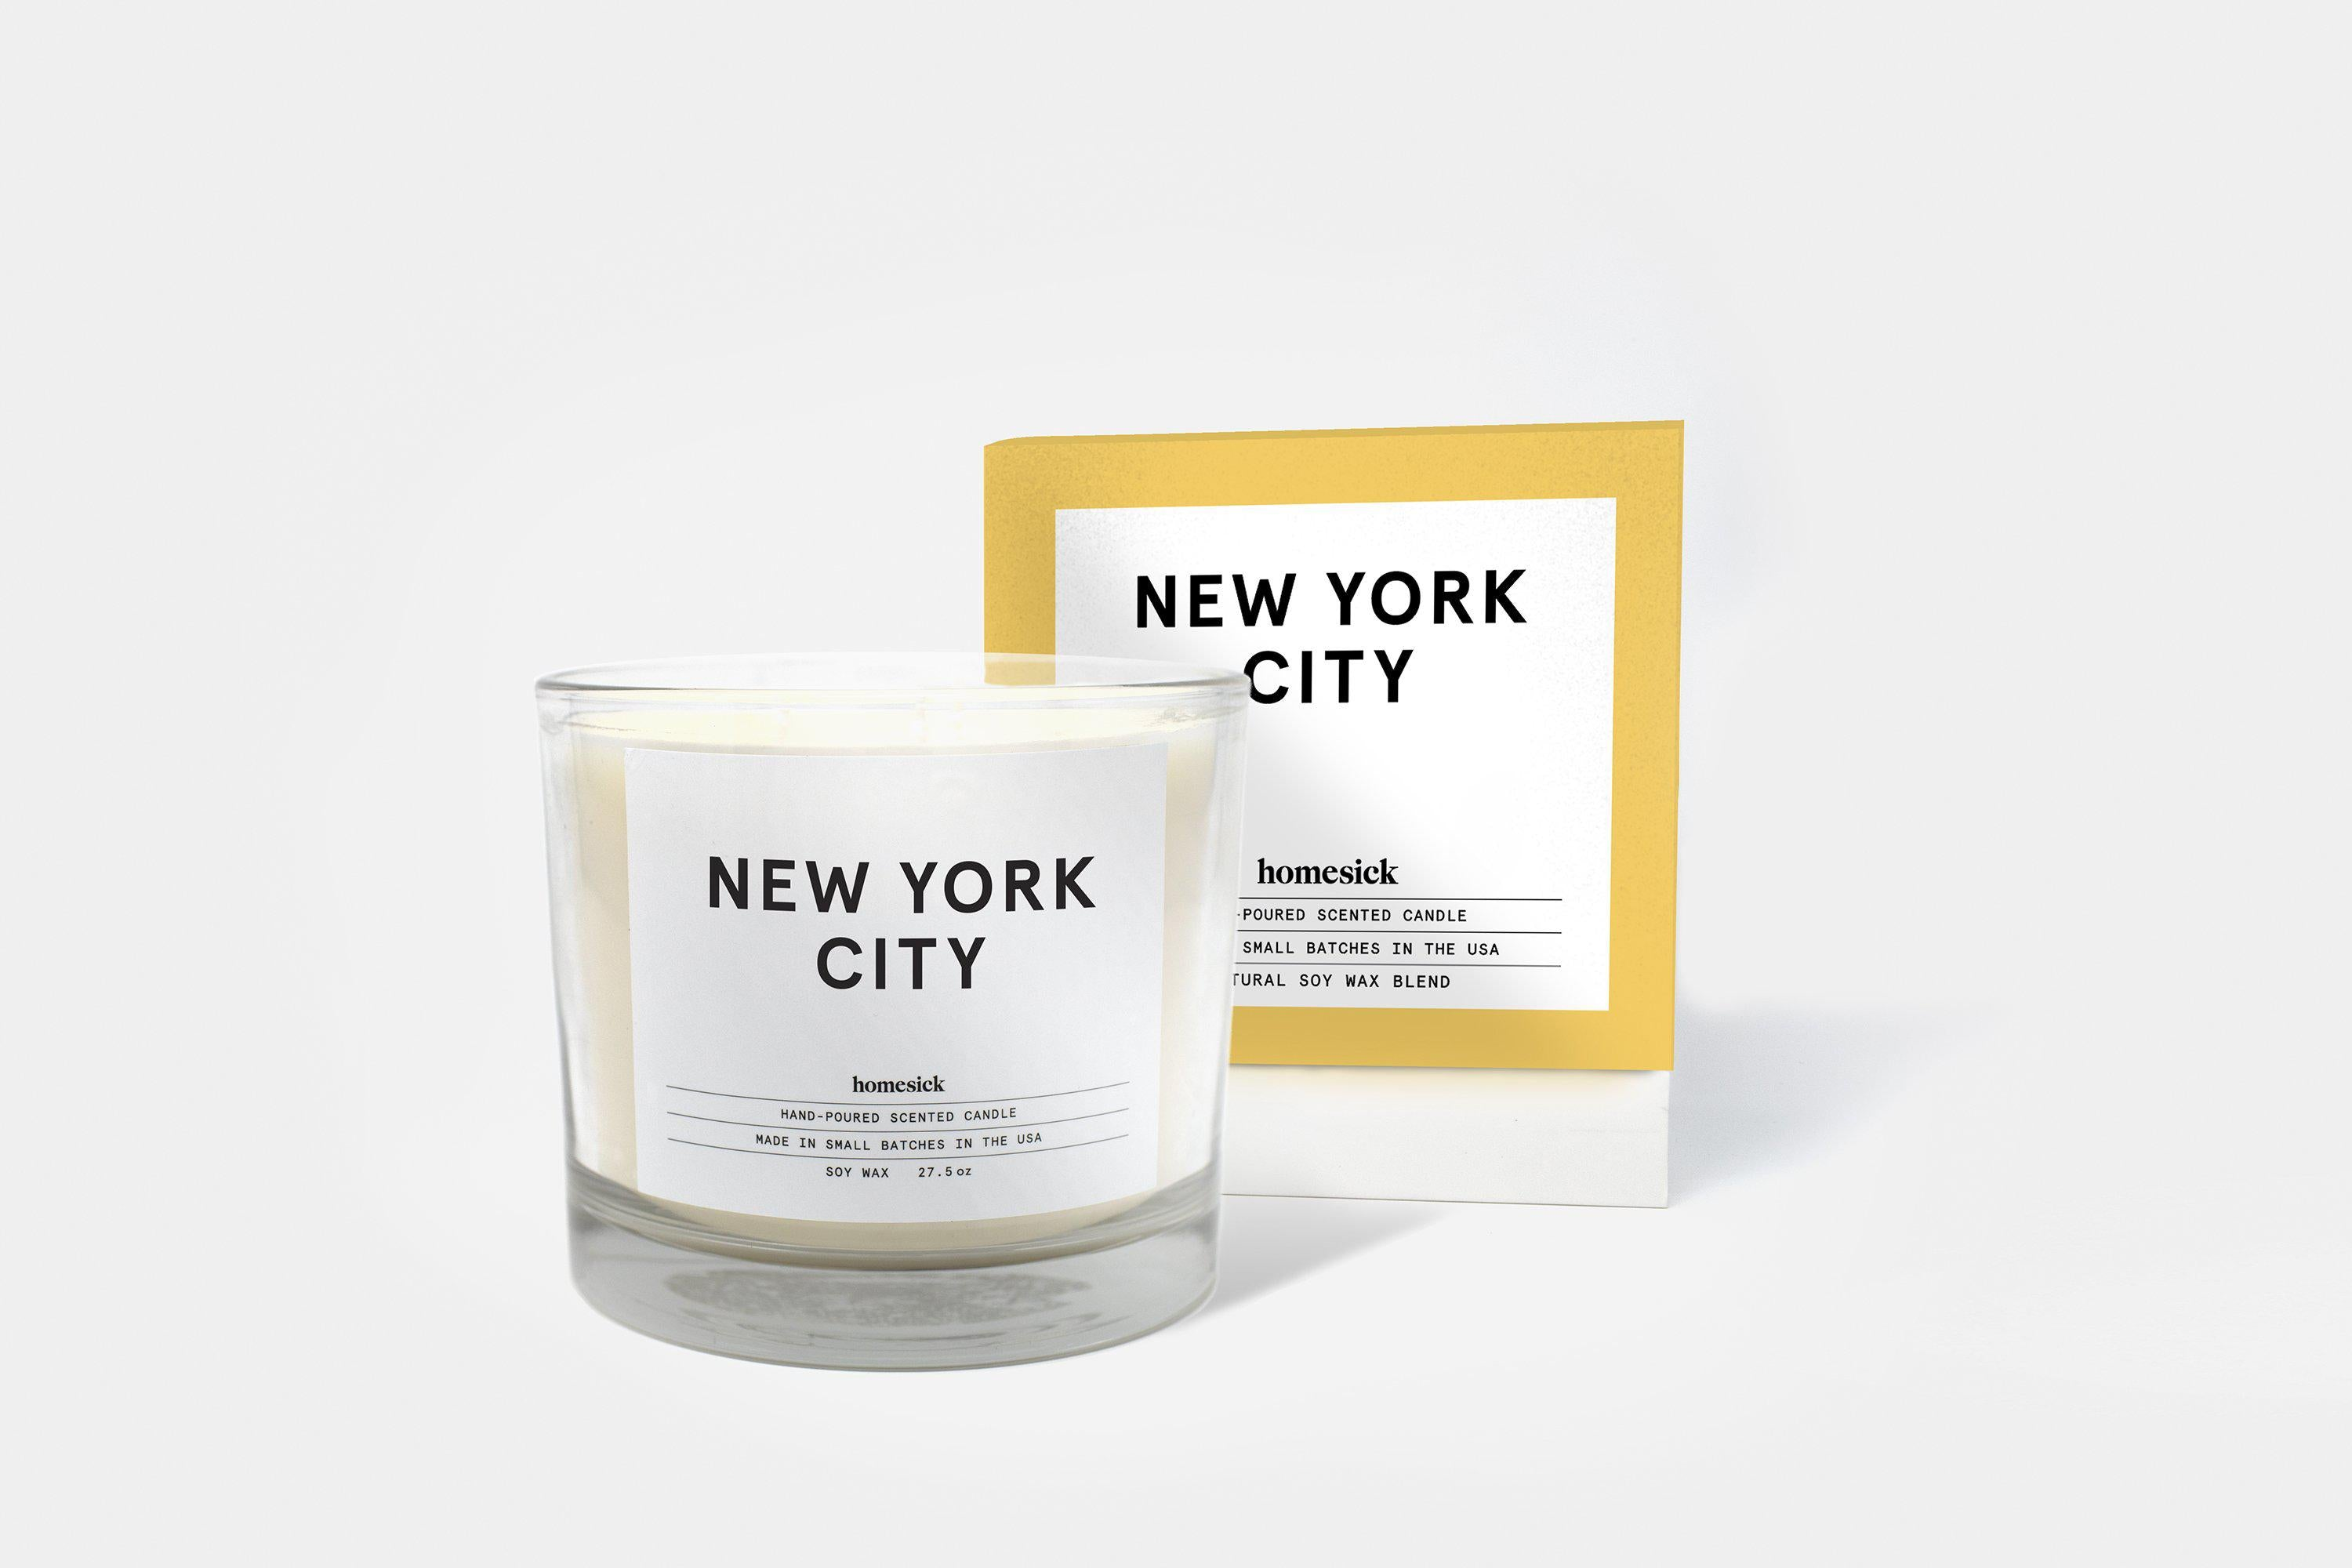 New York City 3 Wick Candle